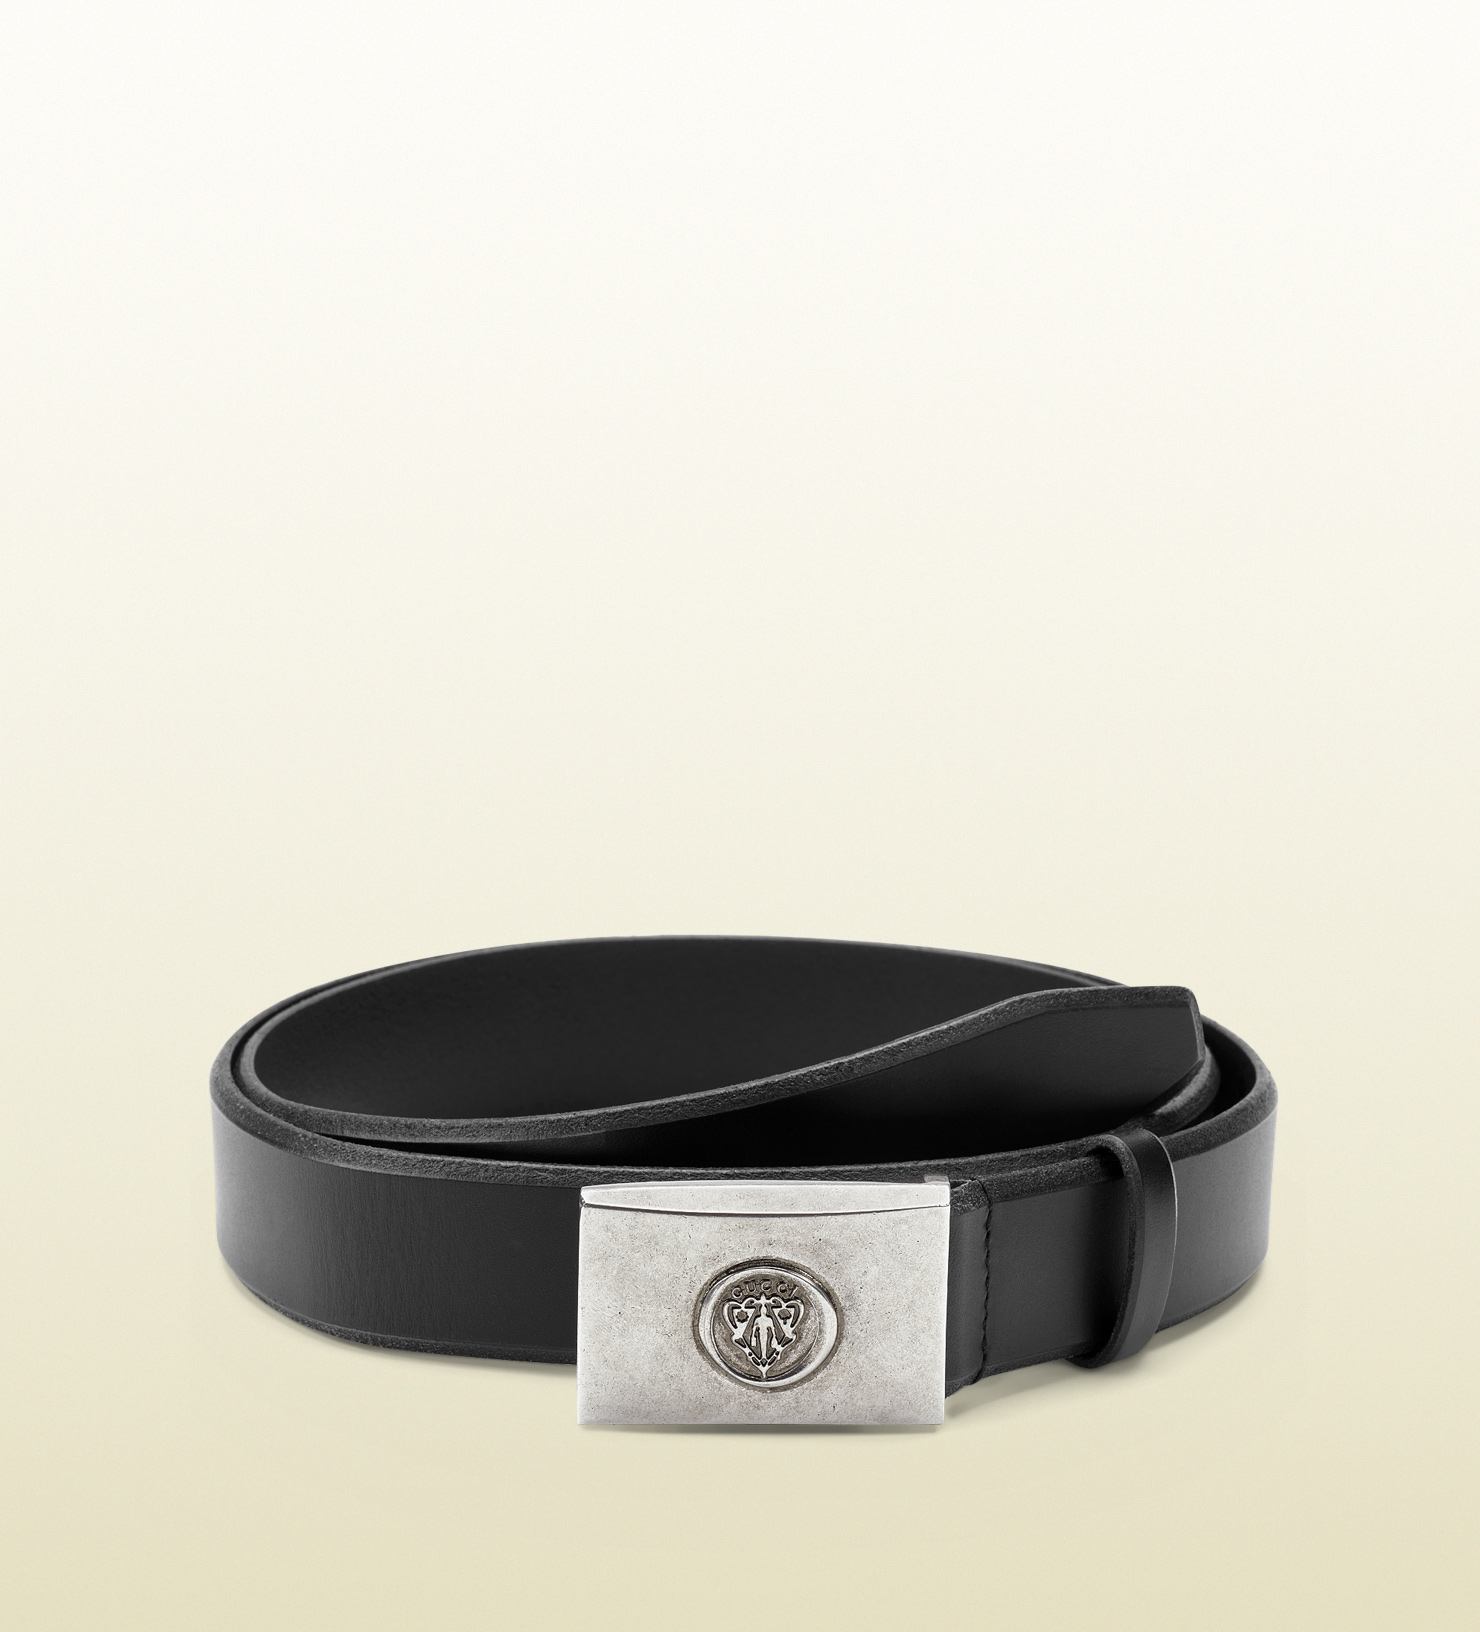 7be154732 Lyst - Gucci Black Leather Belt with Crest Buckle in Black for Men